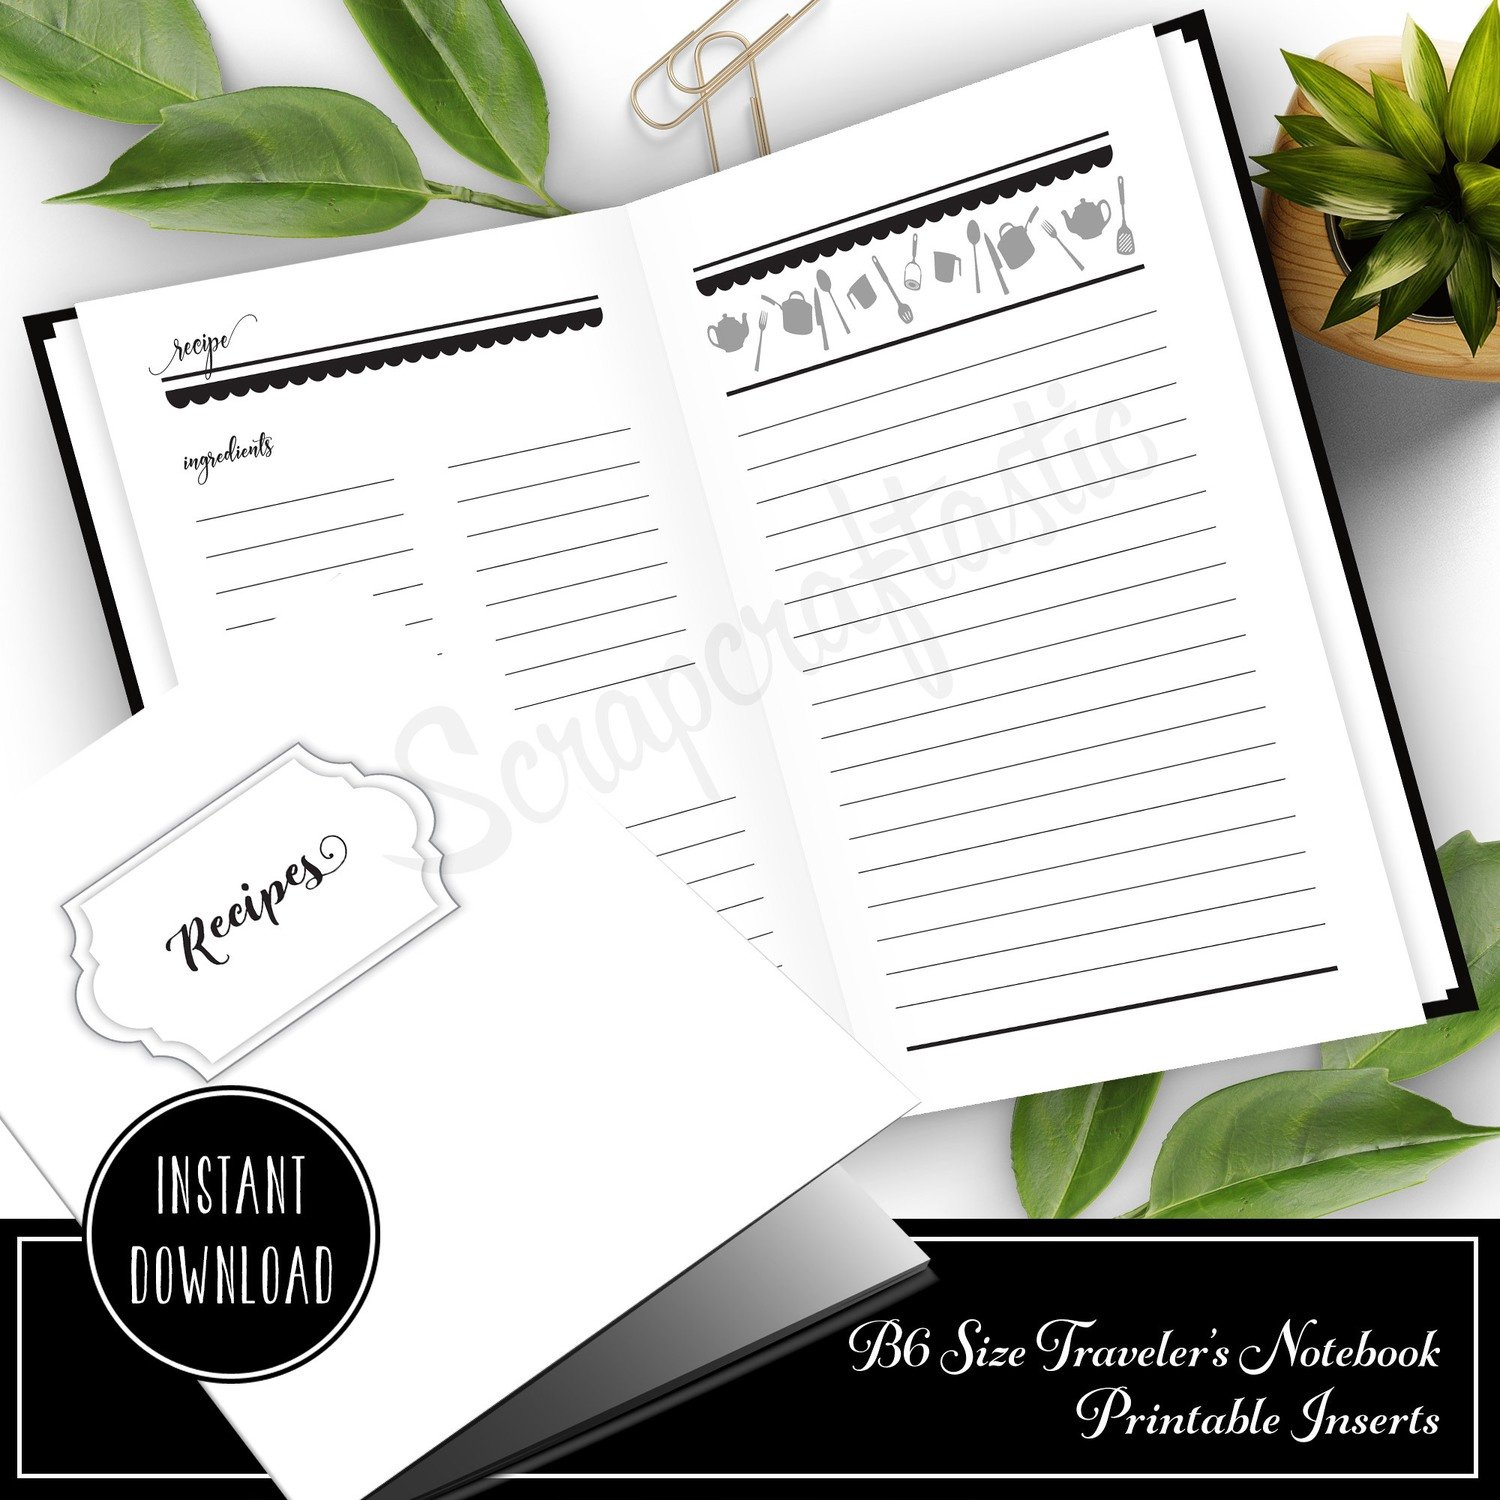 Recipes B6 Size Traveler's Notebook Printable Inserts